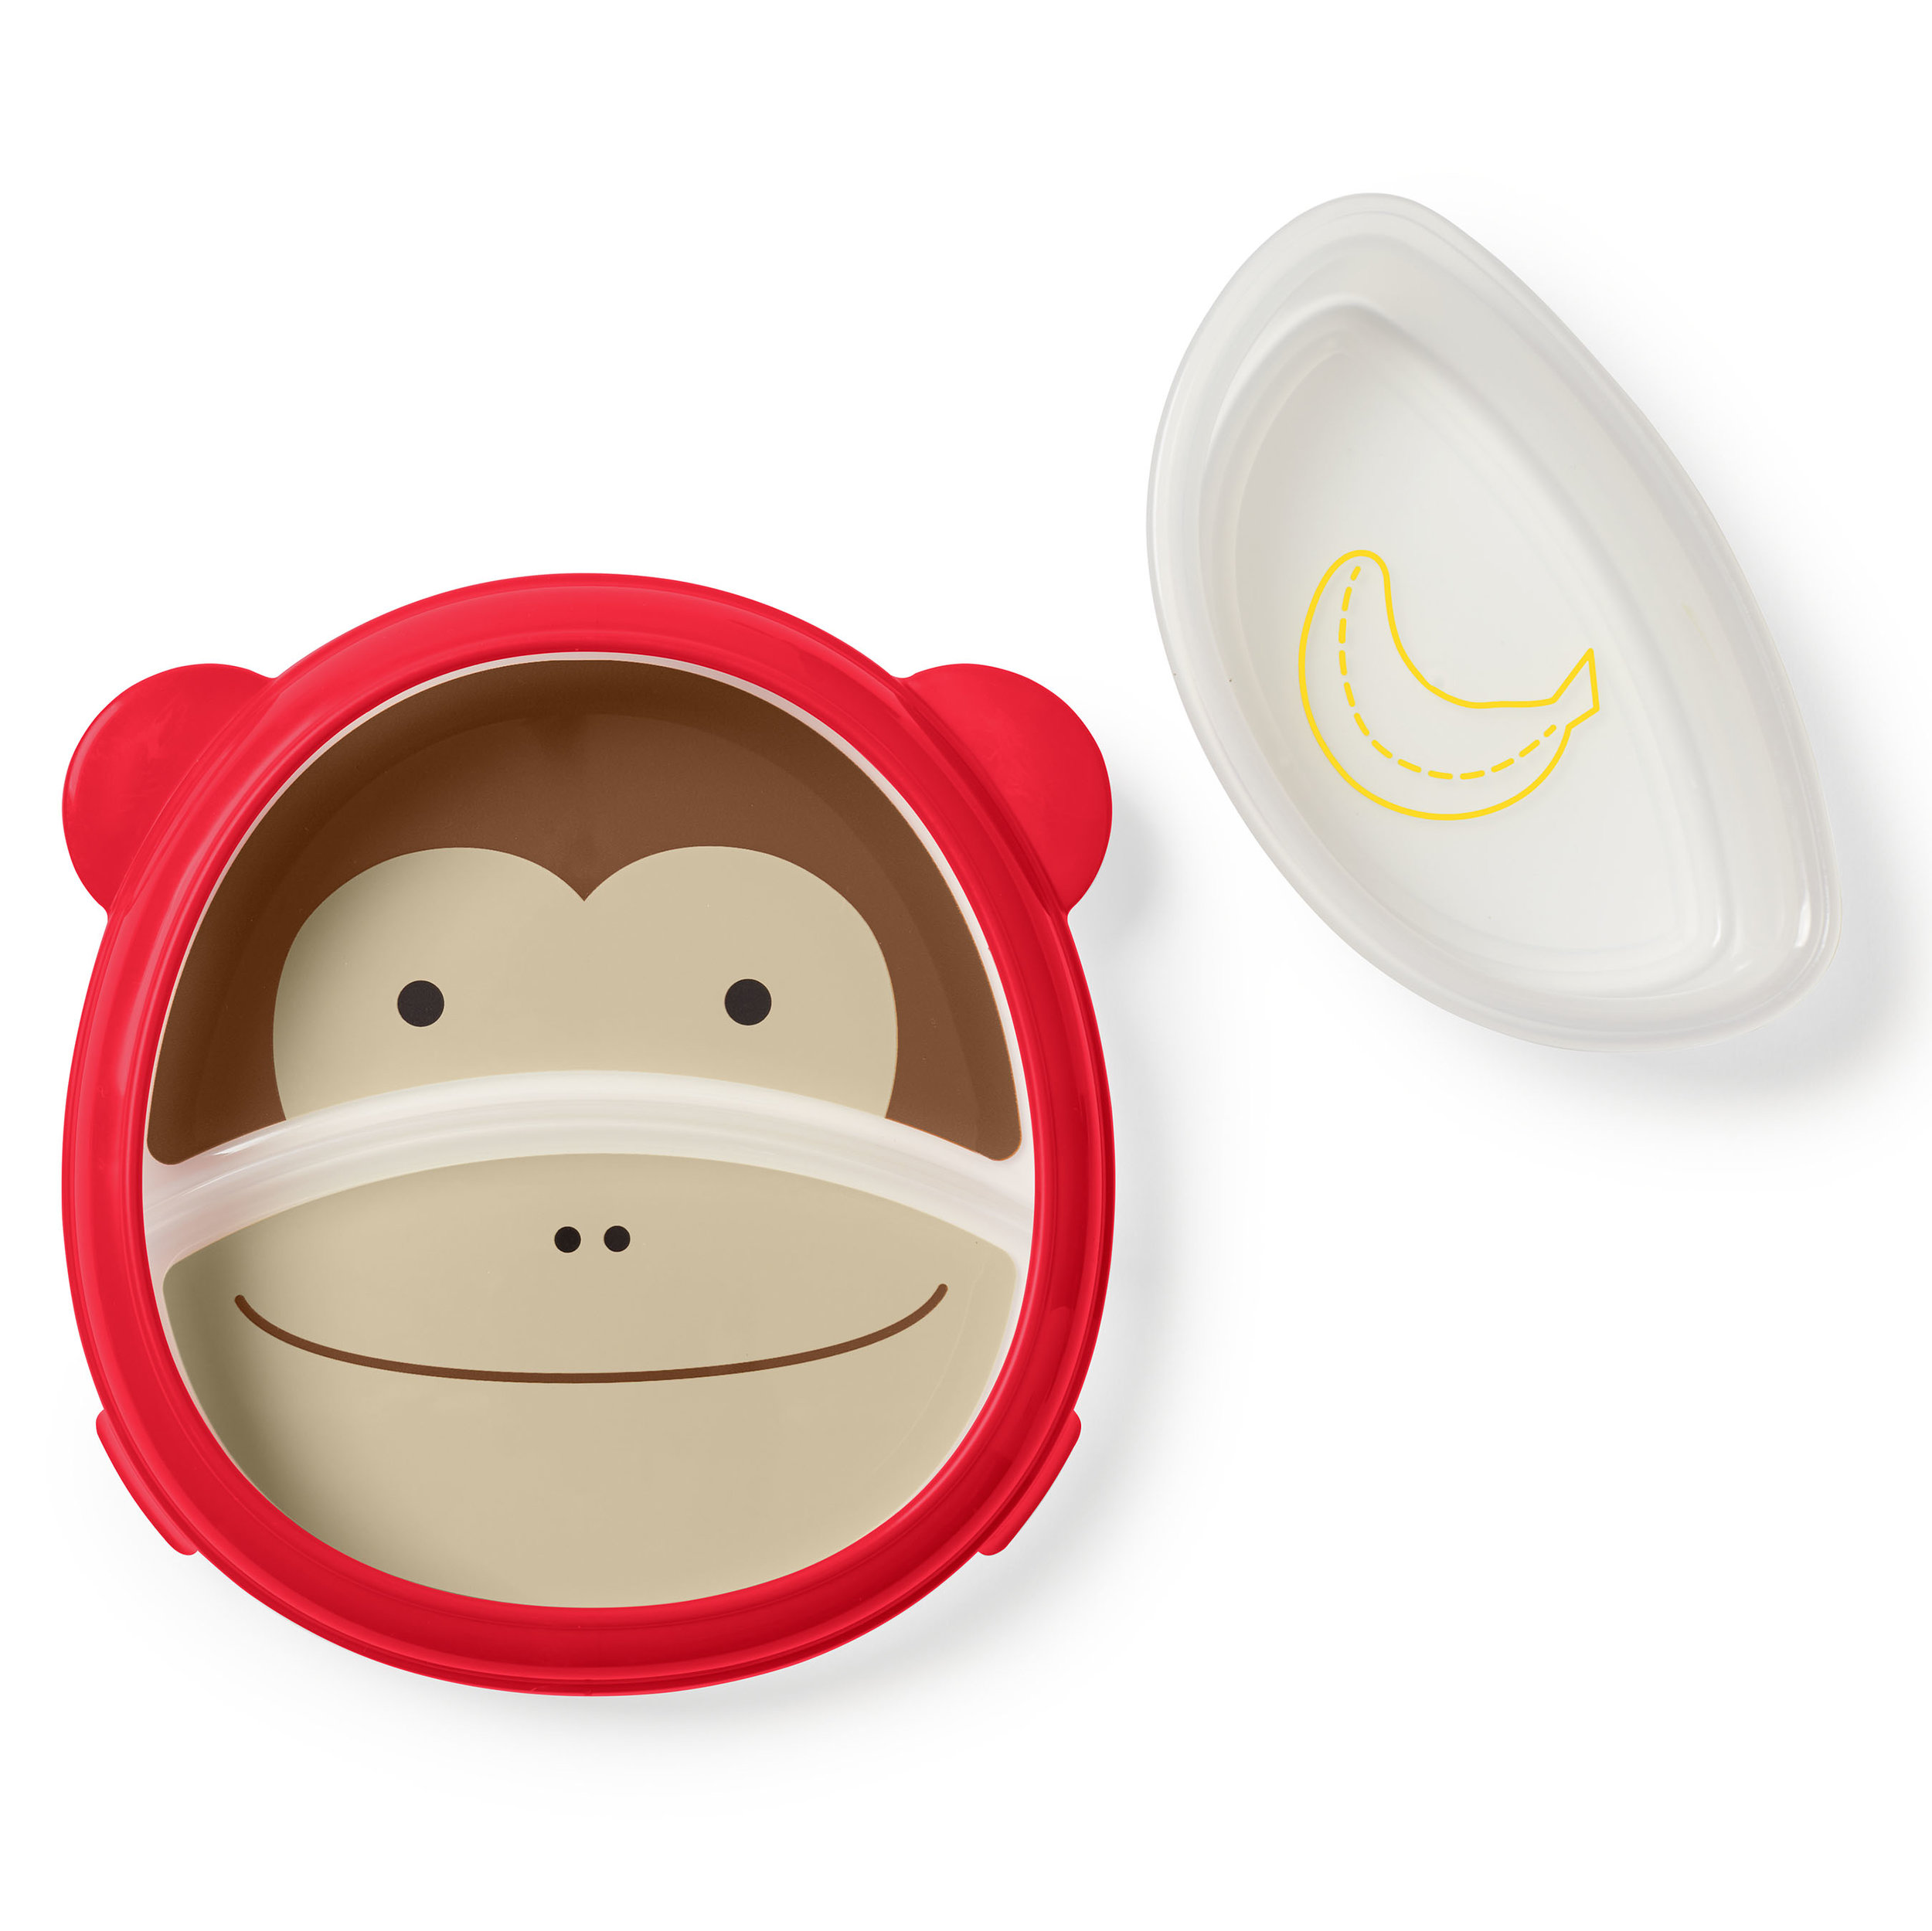 01_Zoo_Smart_Serve_Plate_and_Bowl_Monkey_252227_S(2700).jpg